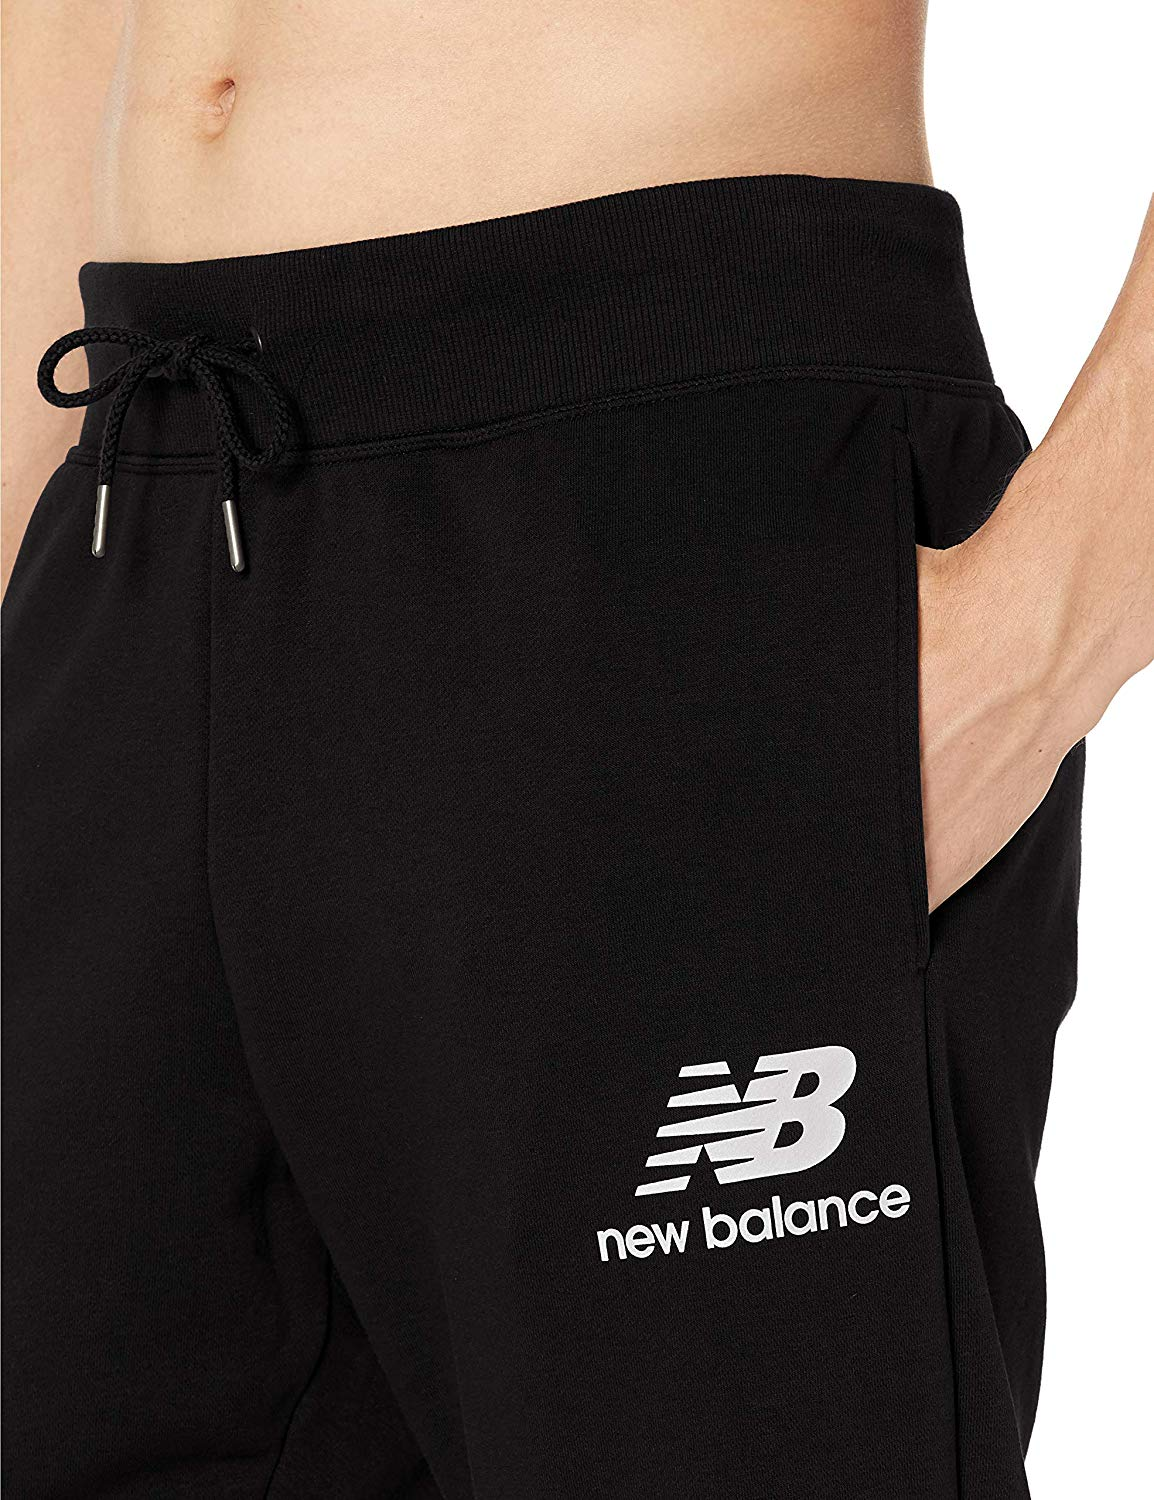 50a946cec96a4 New Balance Men's Essentials Stacked Logo Sweatpants, Black, Large ...